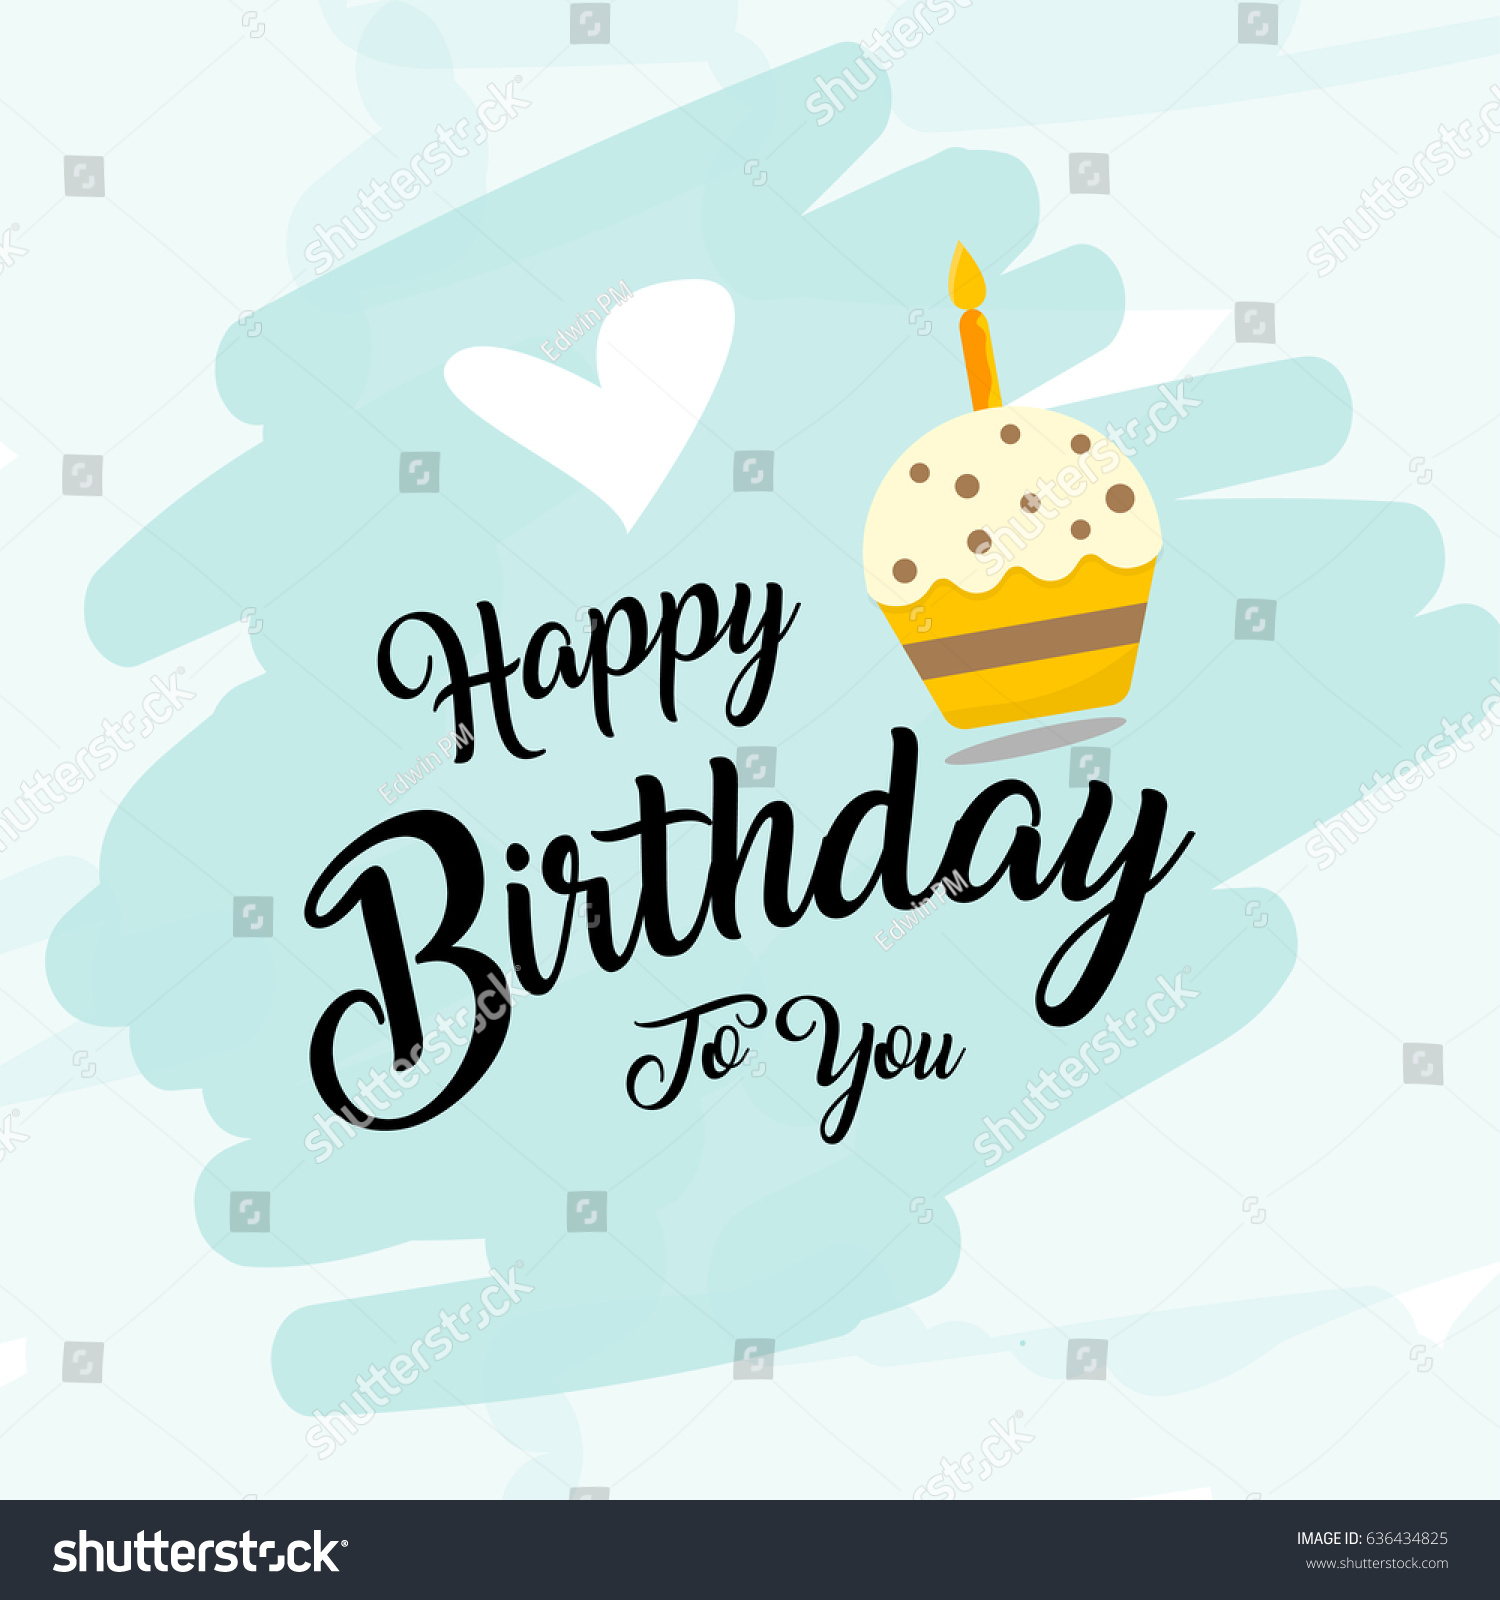 Happy birthday vector fot greeting card stock vector 2018 happy birthday vector fot greeting card website invitation letter composition stopboris Images